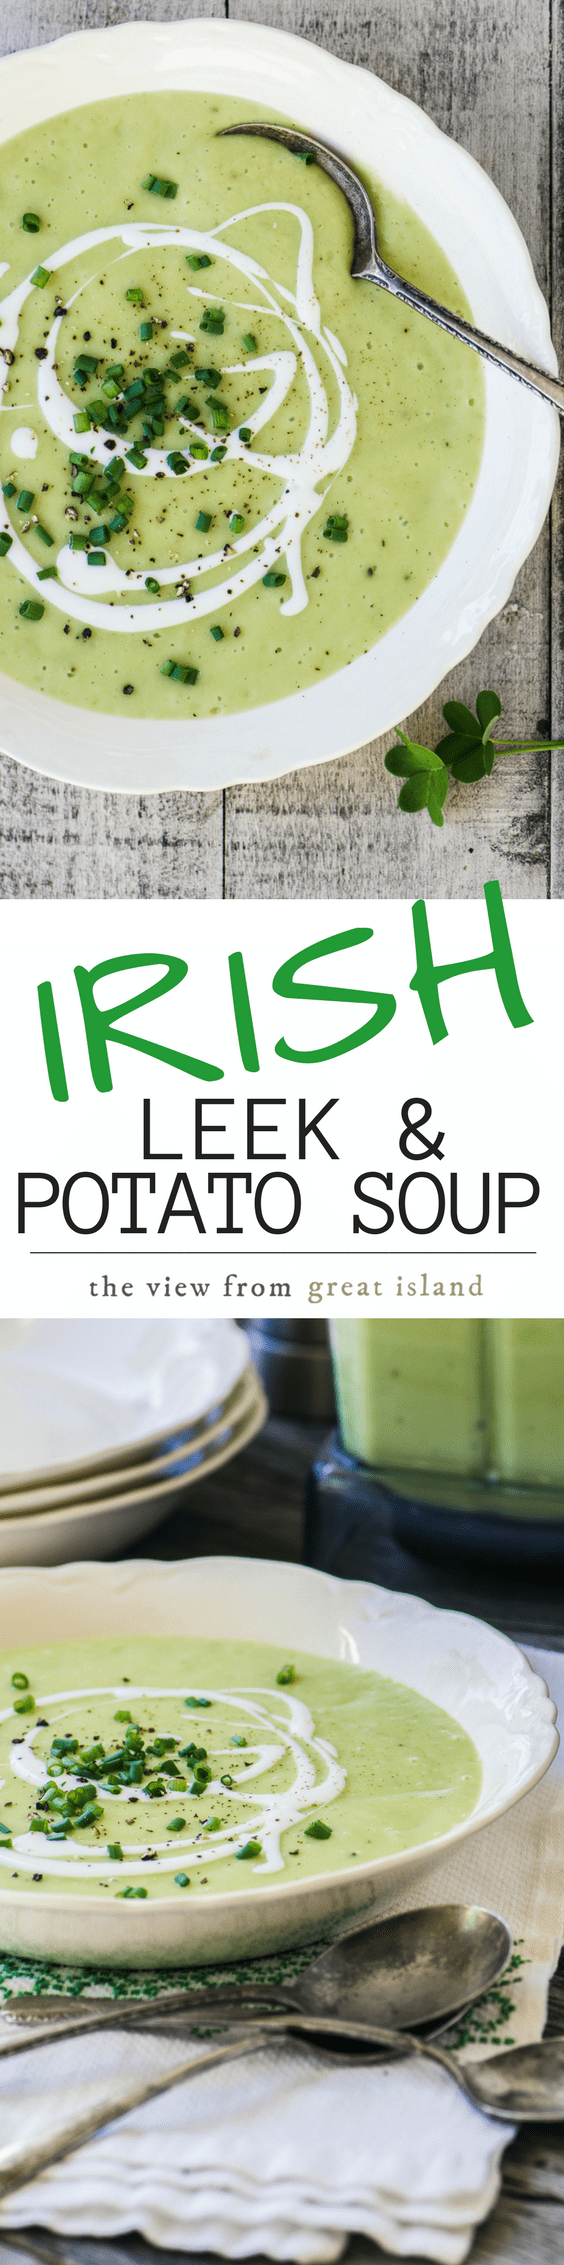 This authentic and satisfying Traditional Irish Leek and Potato Soup comes straight from the Irish countryside. Serve it with a drizzle of soured cream, some fresh snipped chives, and a big chunk of warm soda bread. #soup #potatosoup #irishsoup #greensoup #Saintpatricksdayrecipe #recipe #irishrecipe #comfortfood #leeksoup #leeks #potatoes